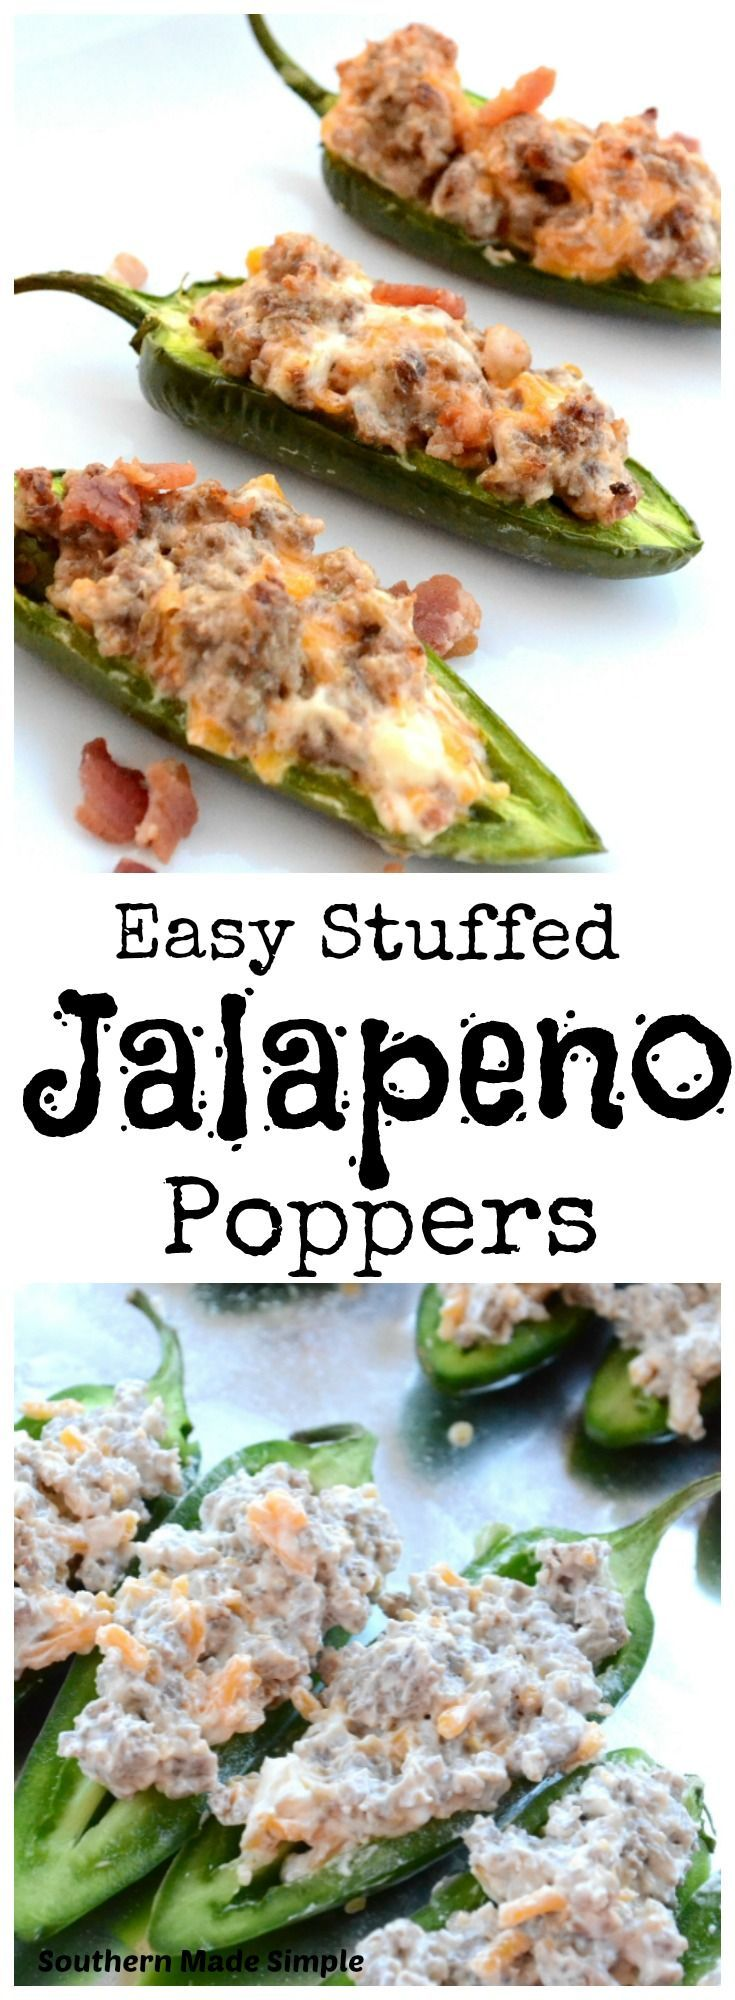 Easy sausage and cream cheese stuffed jalapeno peppers - a crazy easy appetizer that packs a delicious punch of heat!